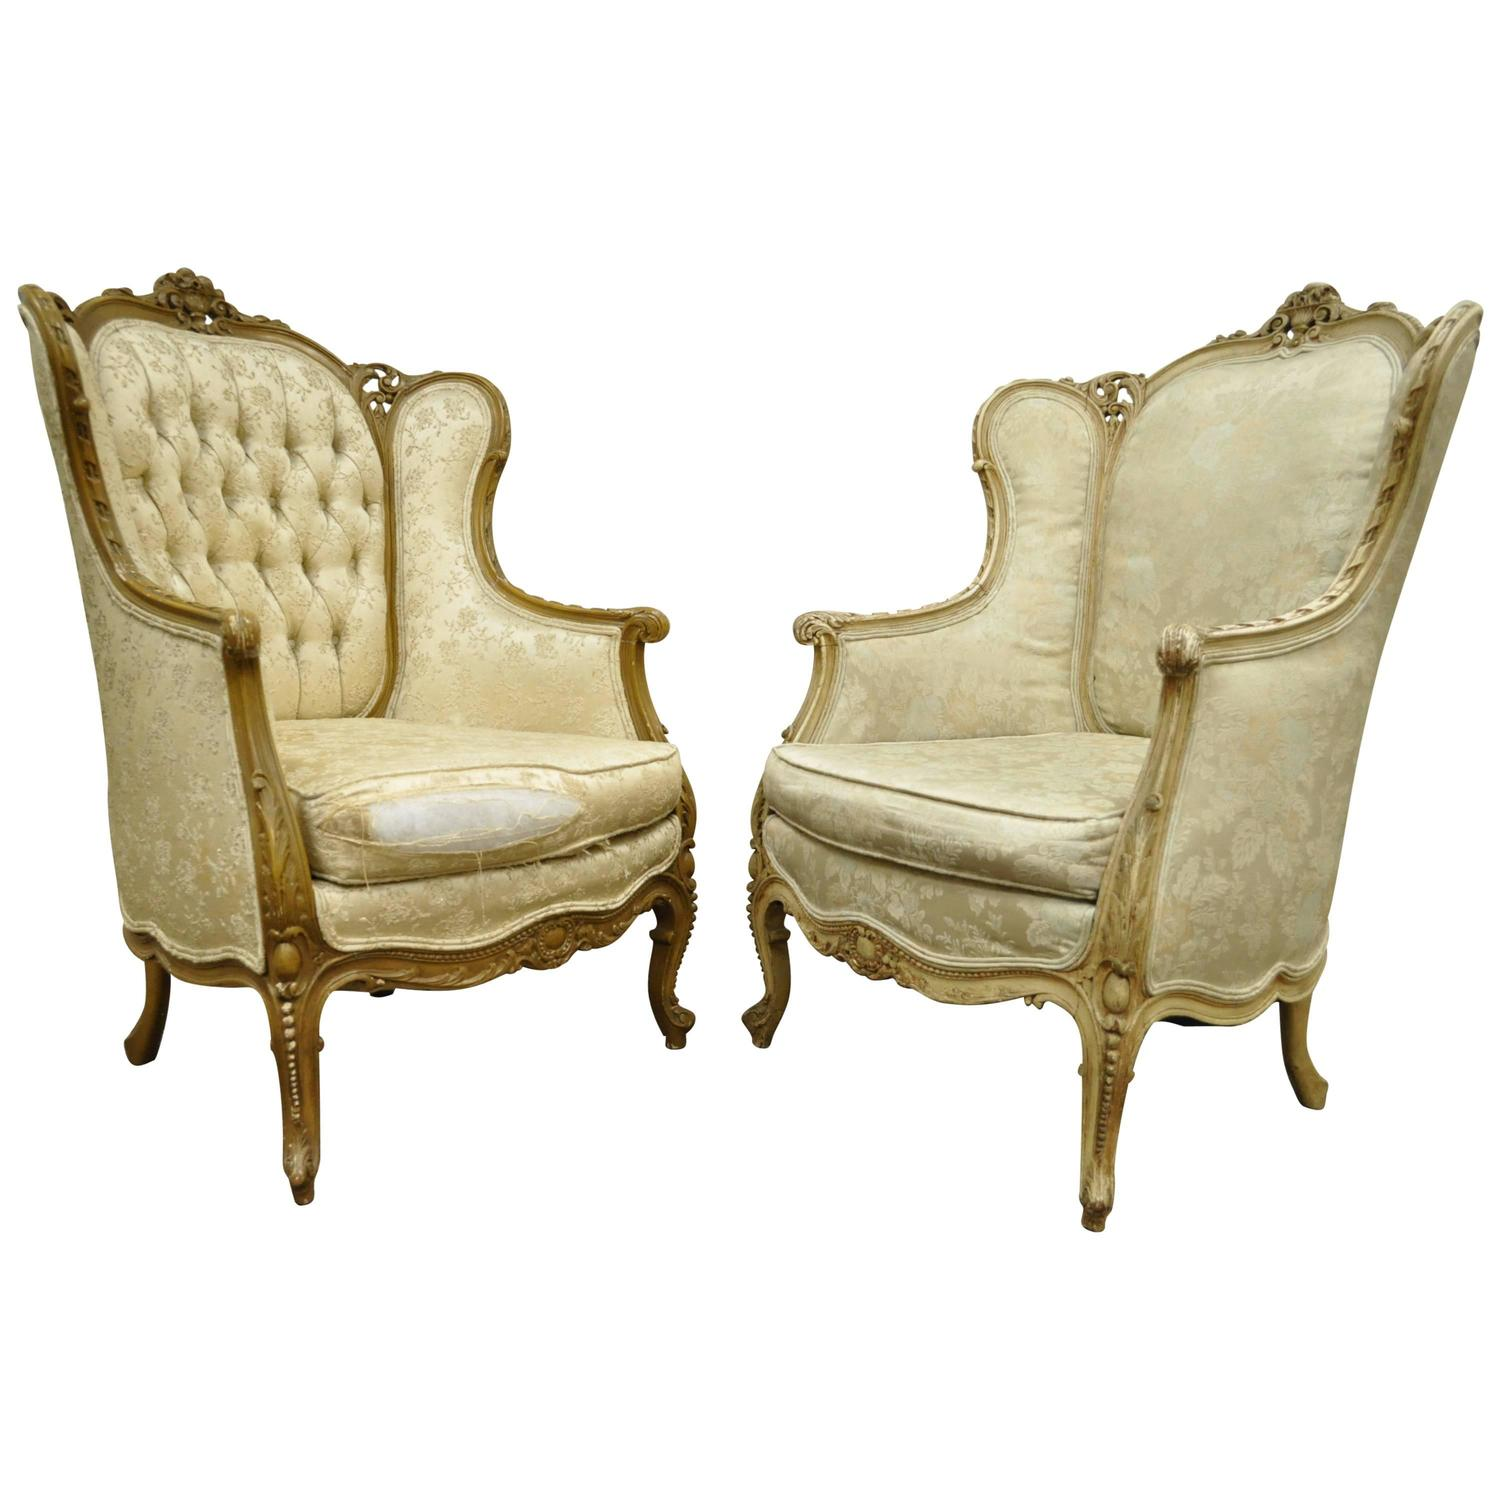 Pair of french antique arm chairs pair of antique wing back chairs - Pair Of 1930 S French Louis Xv Style Carved Wingback Bergere Armchairs For Sale At 1stdibs